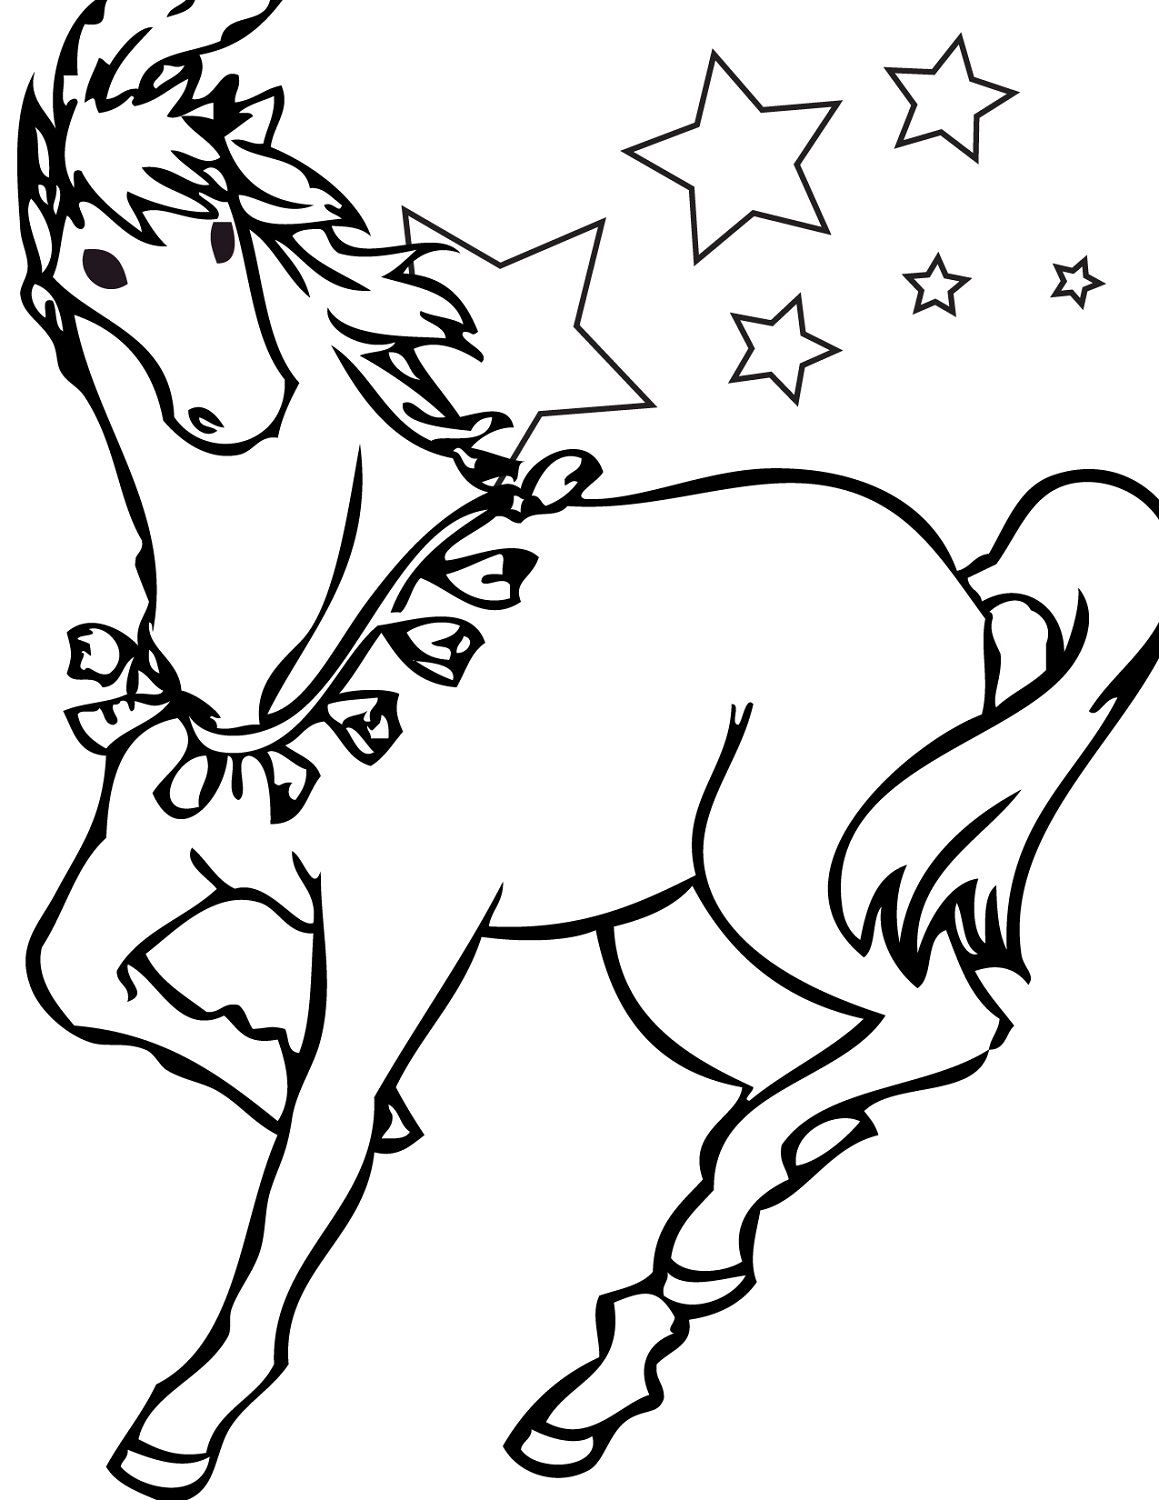 horse printables coloring pages 30 best horse coloring pages ideas weneedfun printables coloring pages horse